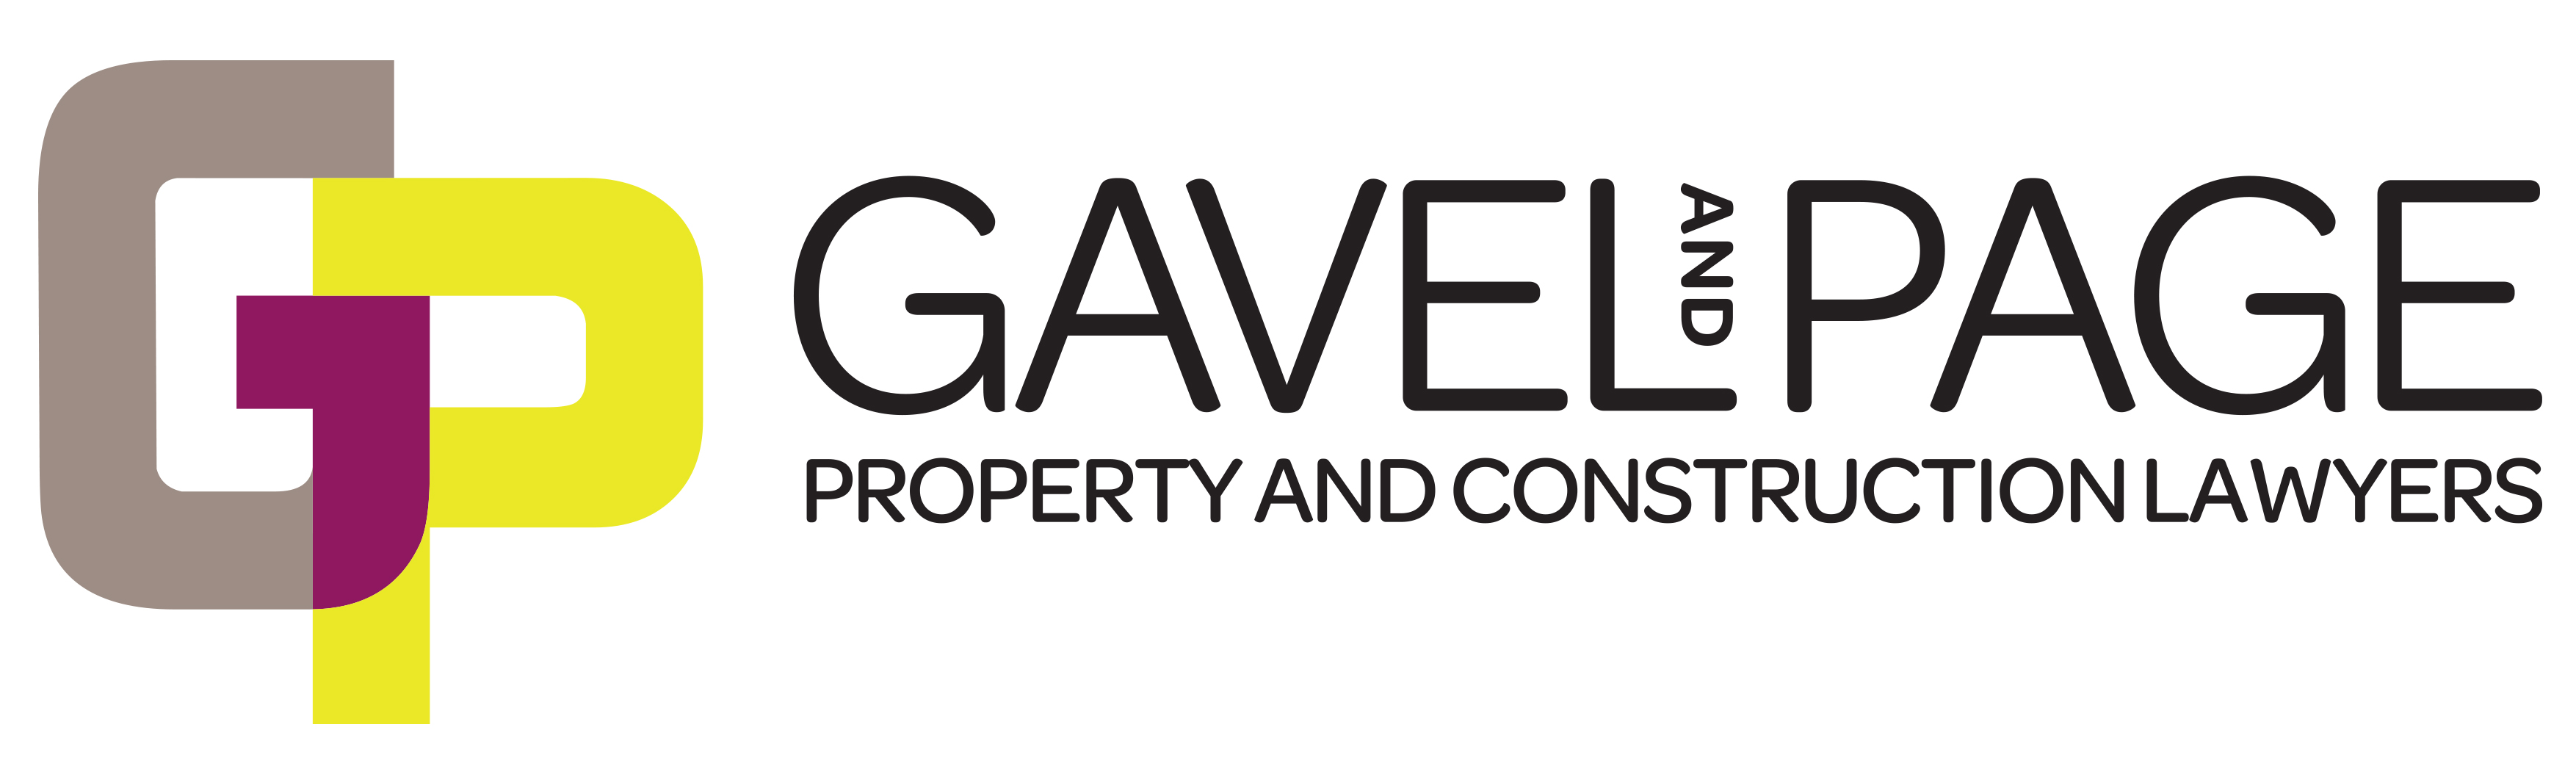 Gavel & Page Lawyers Logo